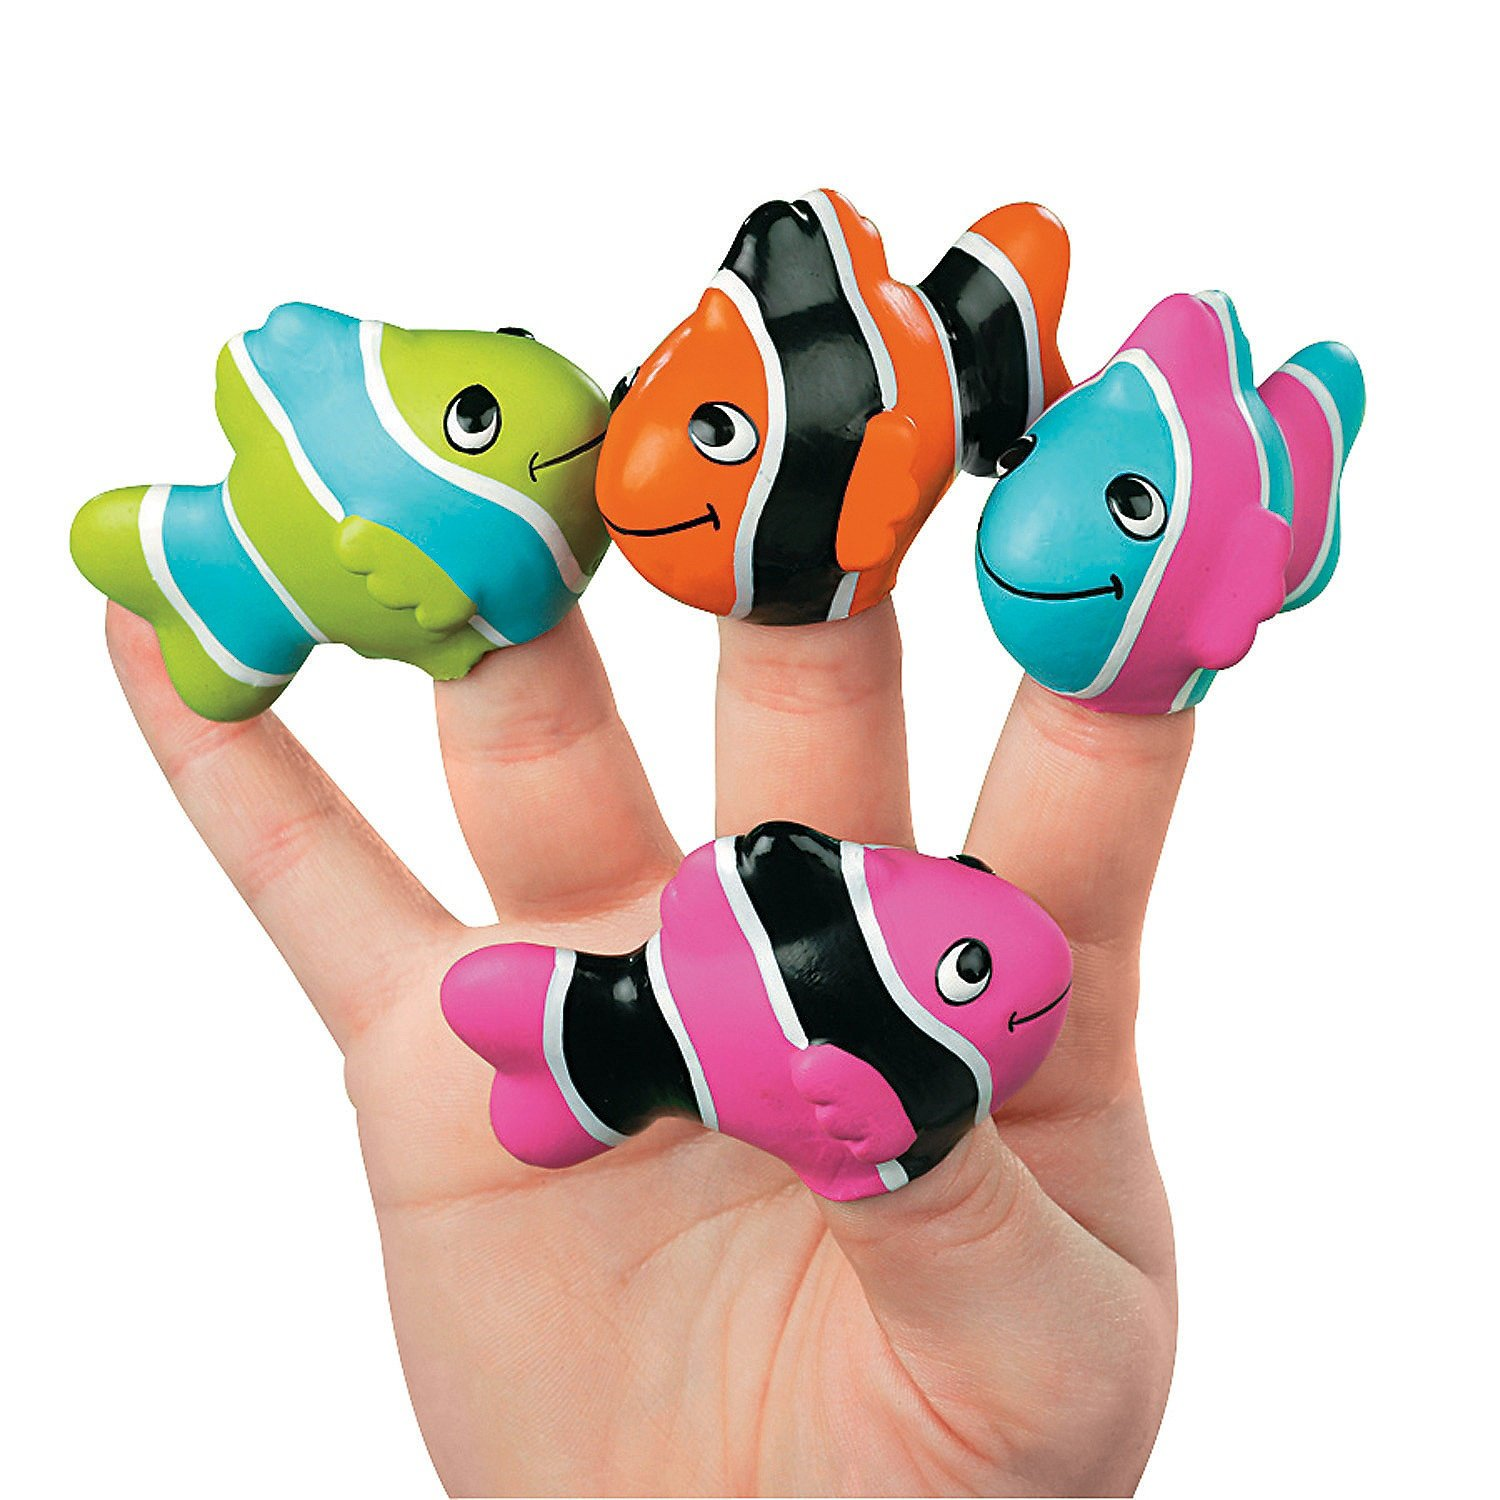 Clown Fish Finger Puppets - Teaching Supplies & Teaching Supplies,pack of 12,various color